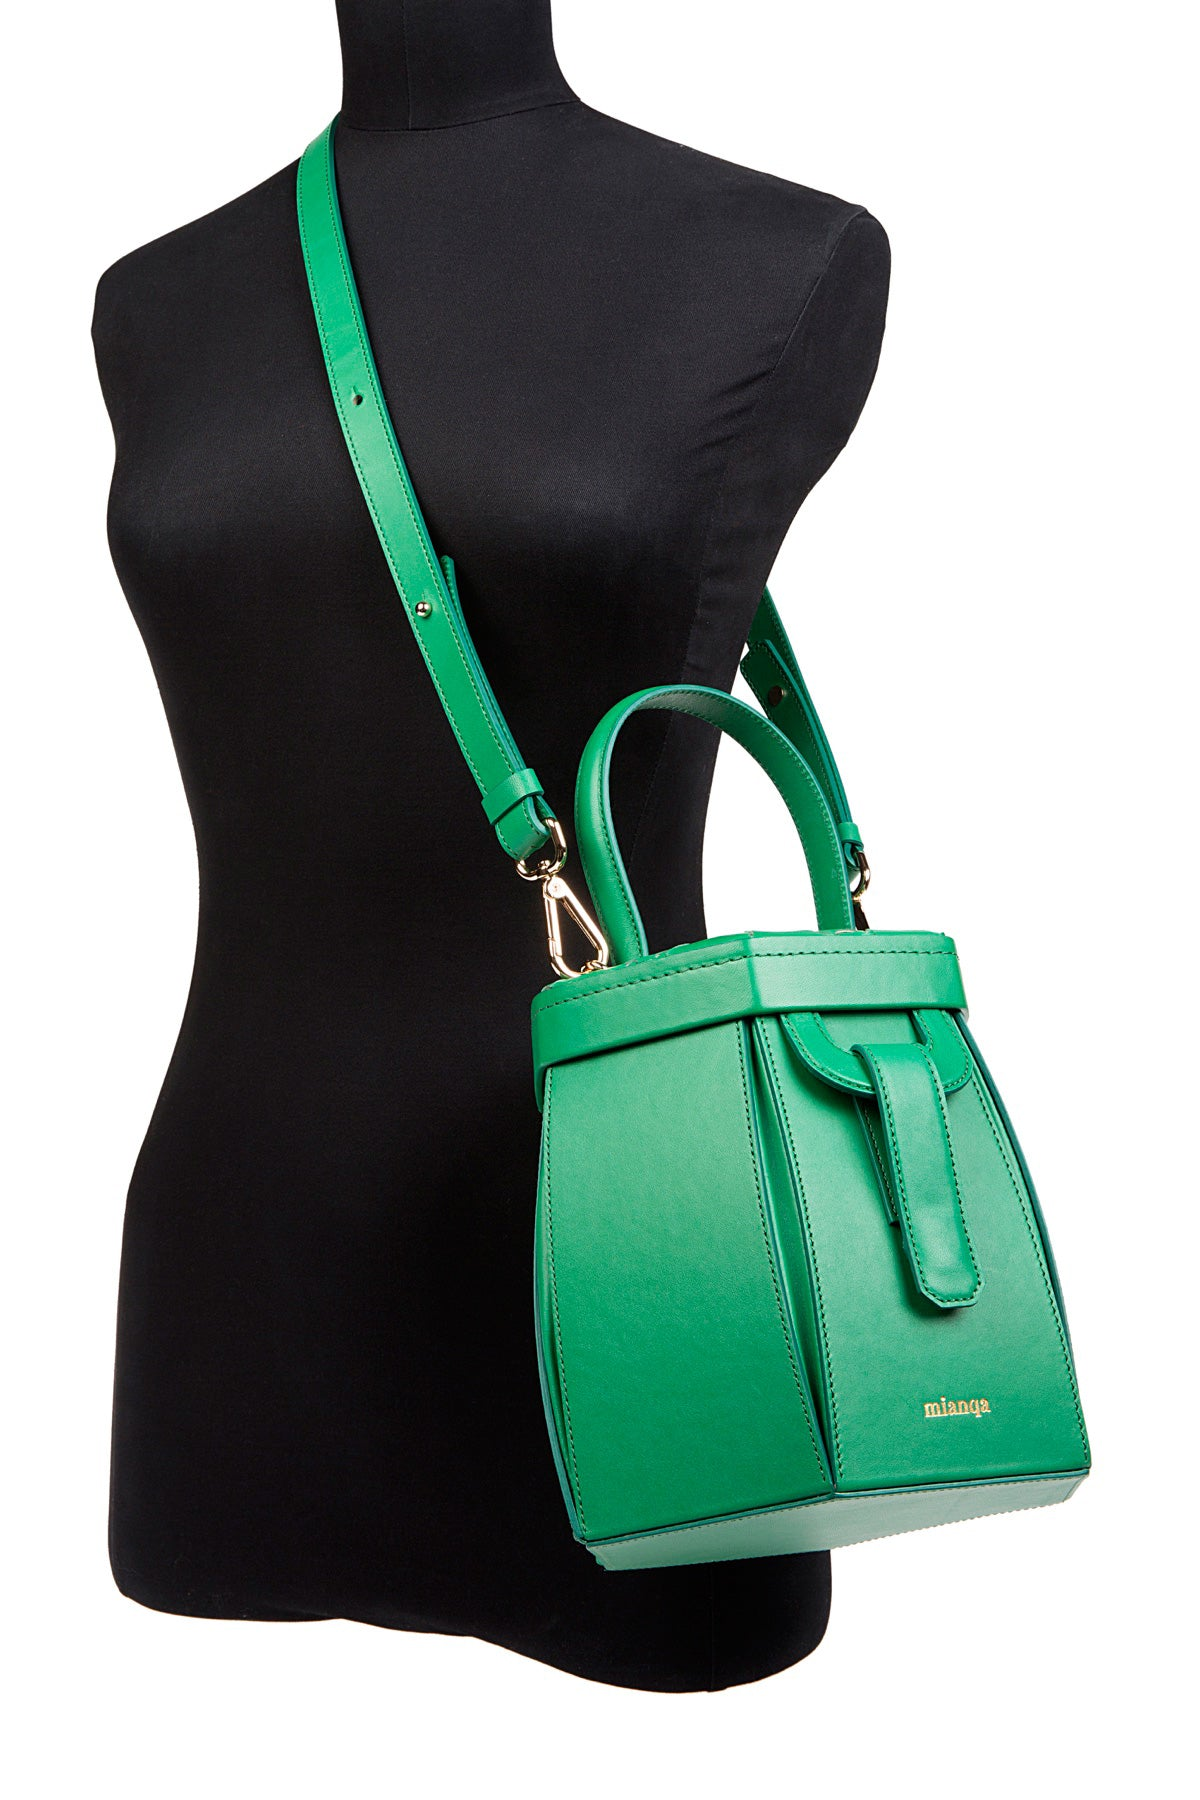 E L I F | Hexagon Bag Green